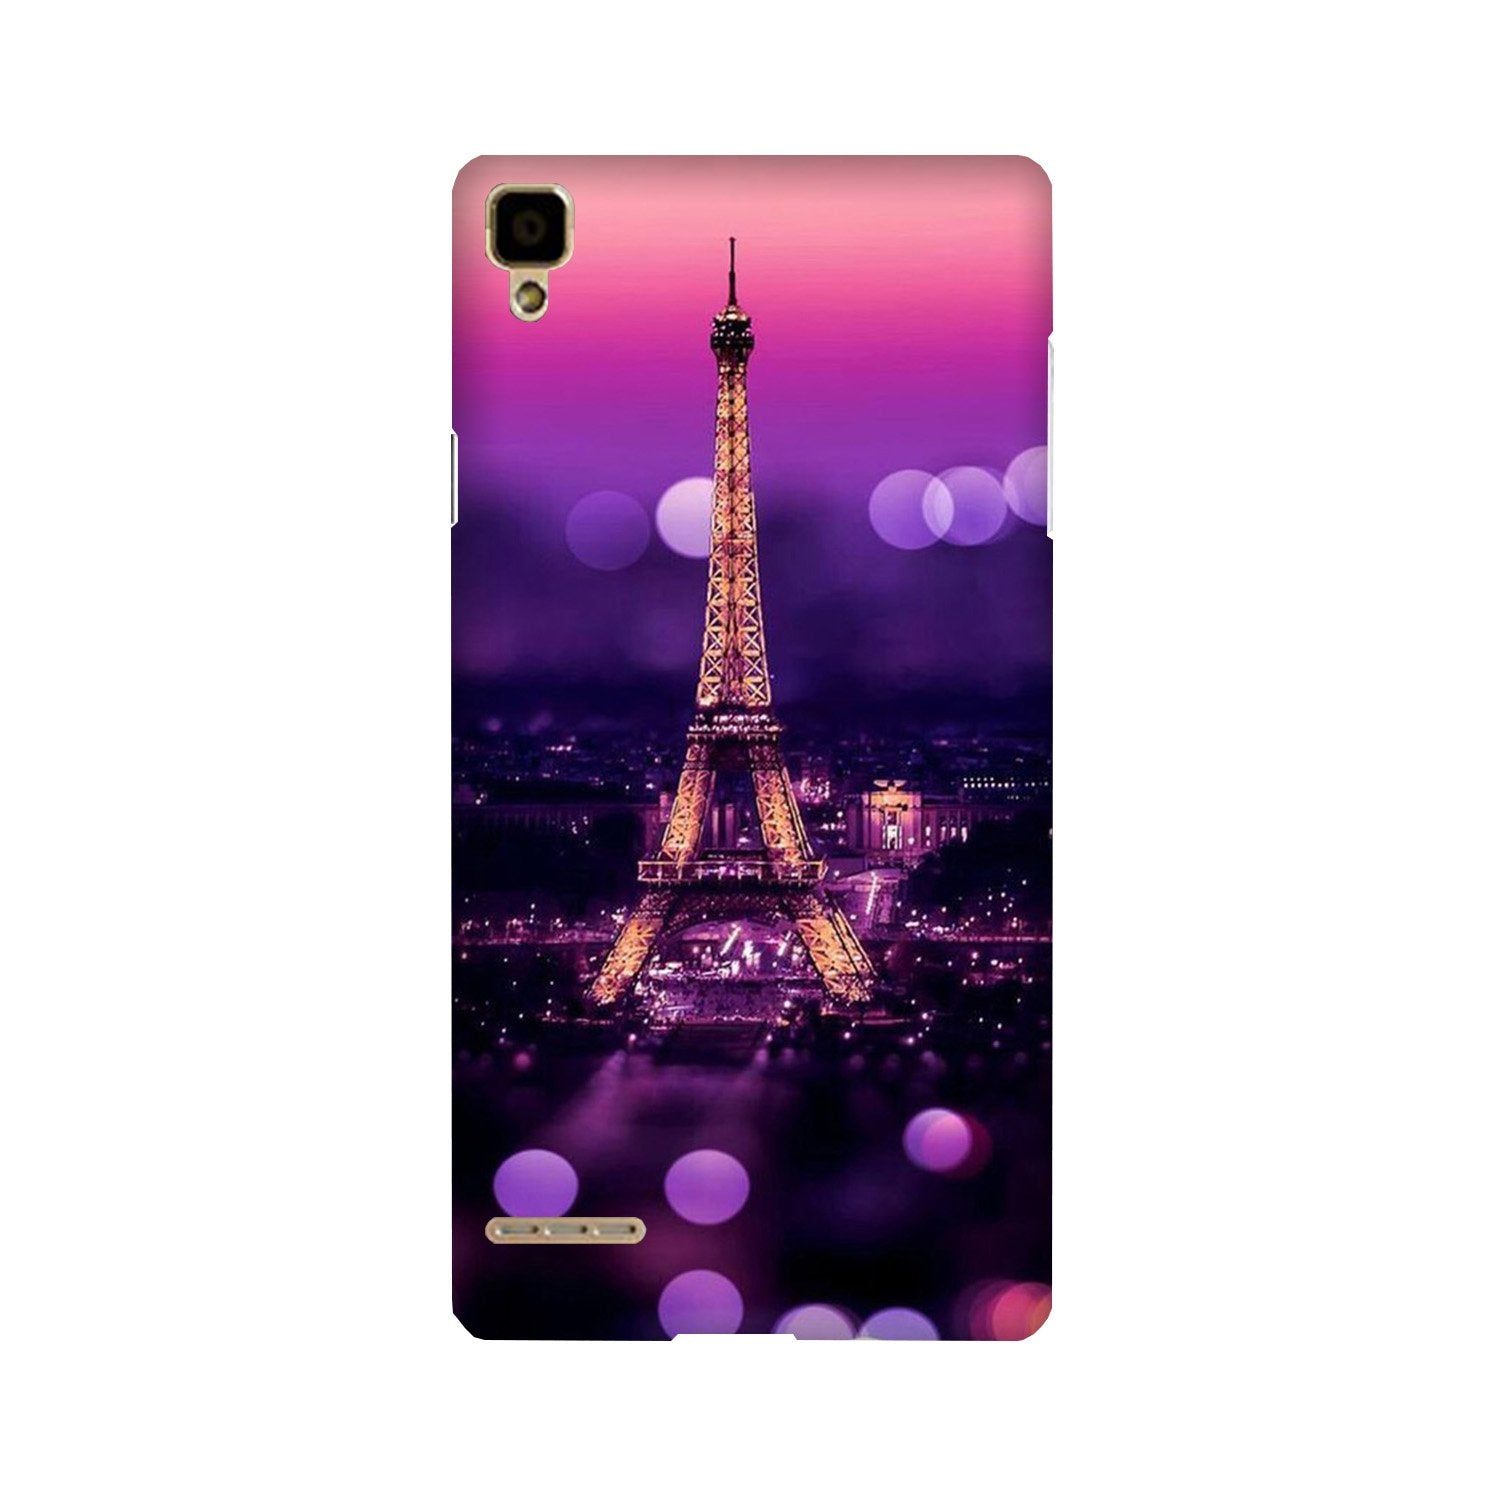 Eiffel Tower Case for Oppo F1